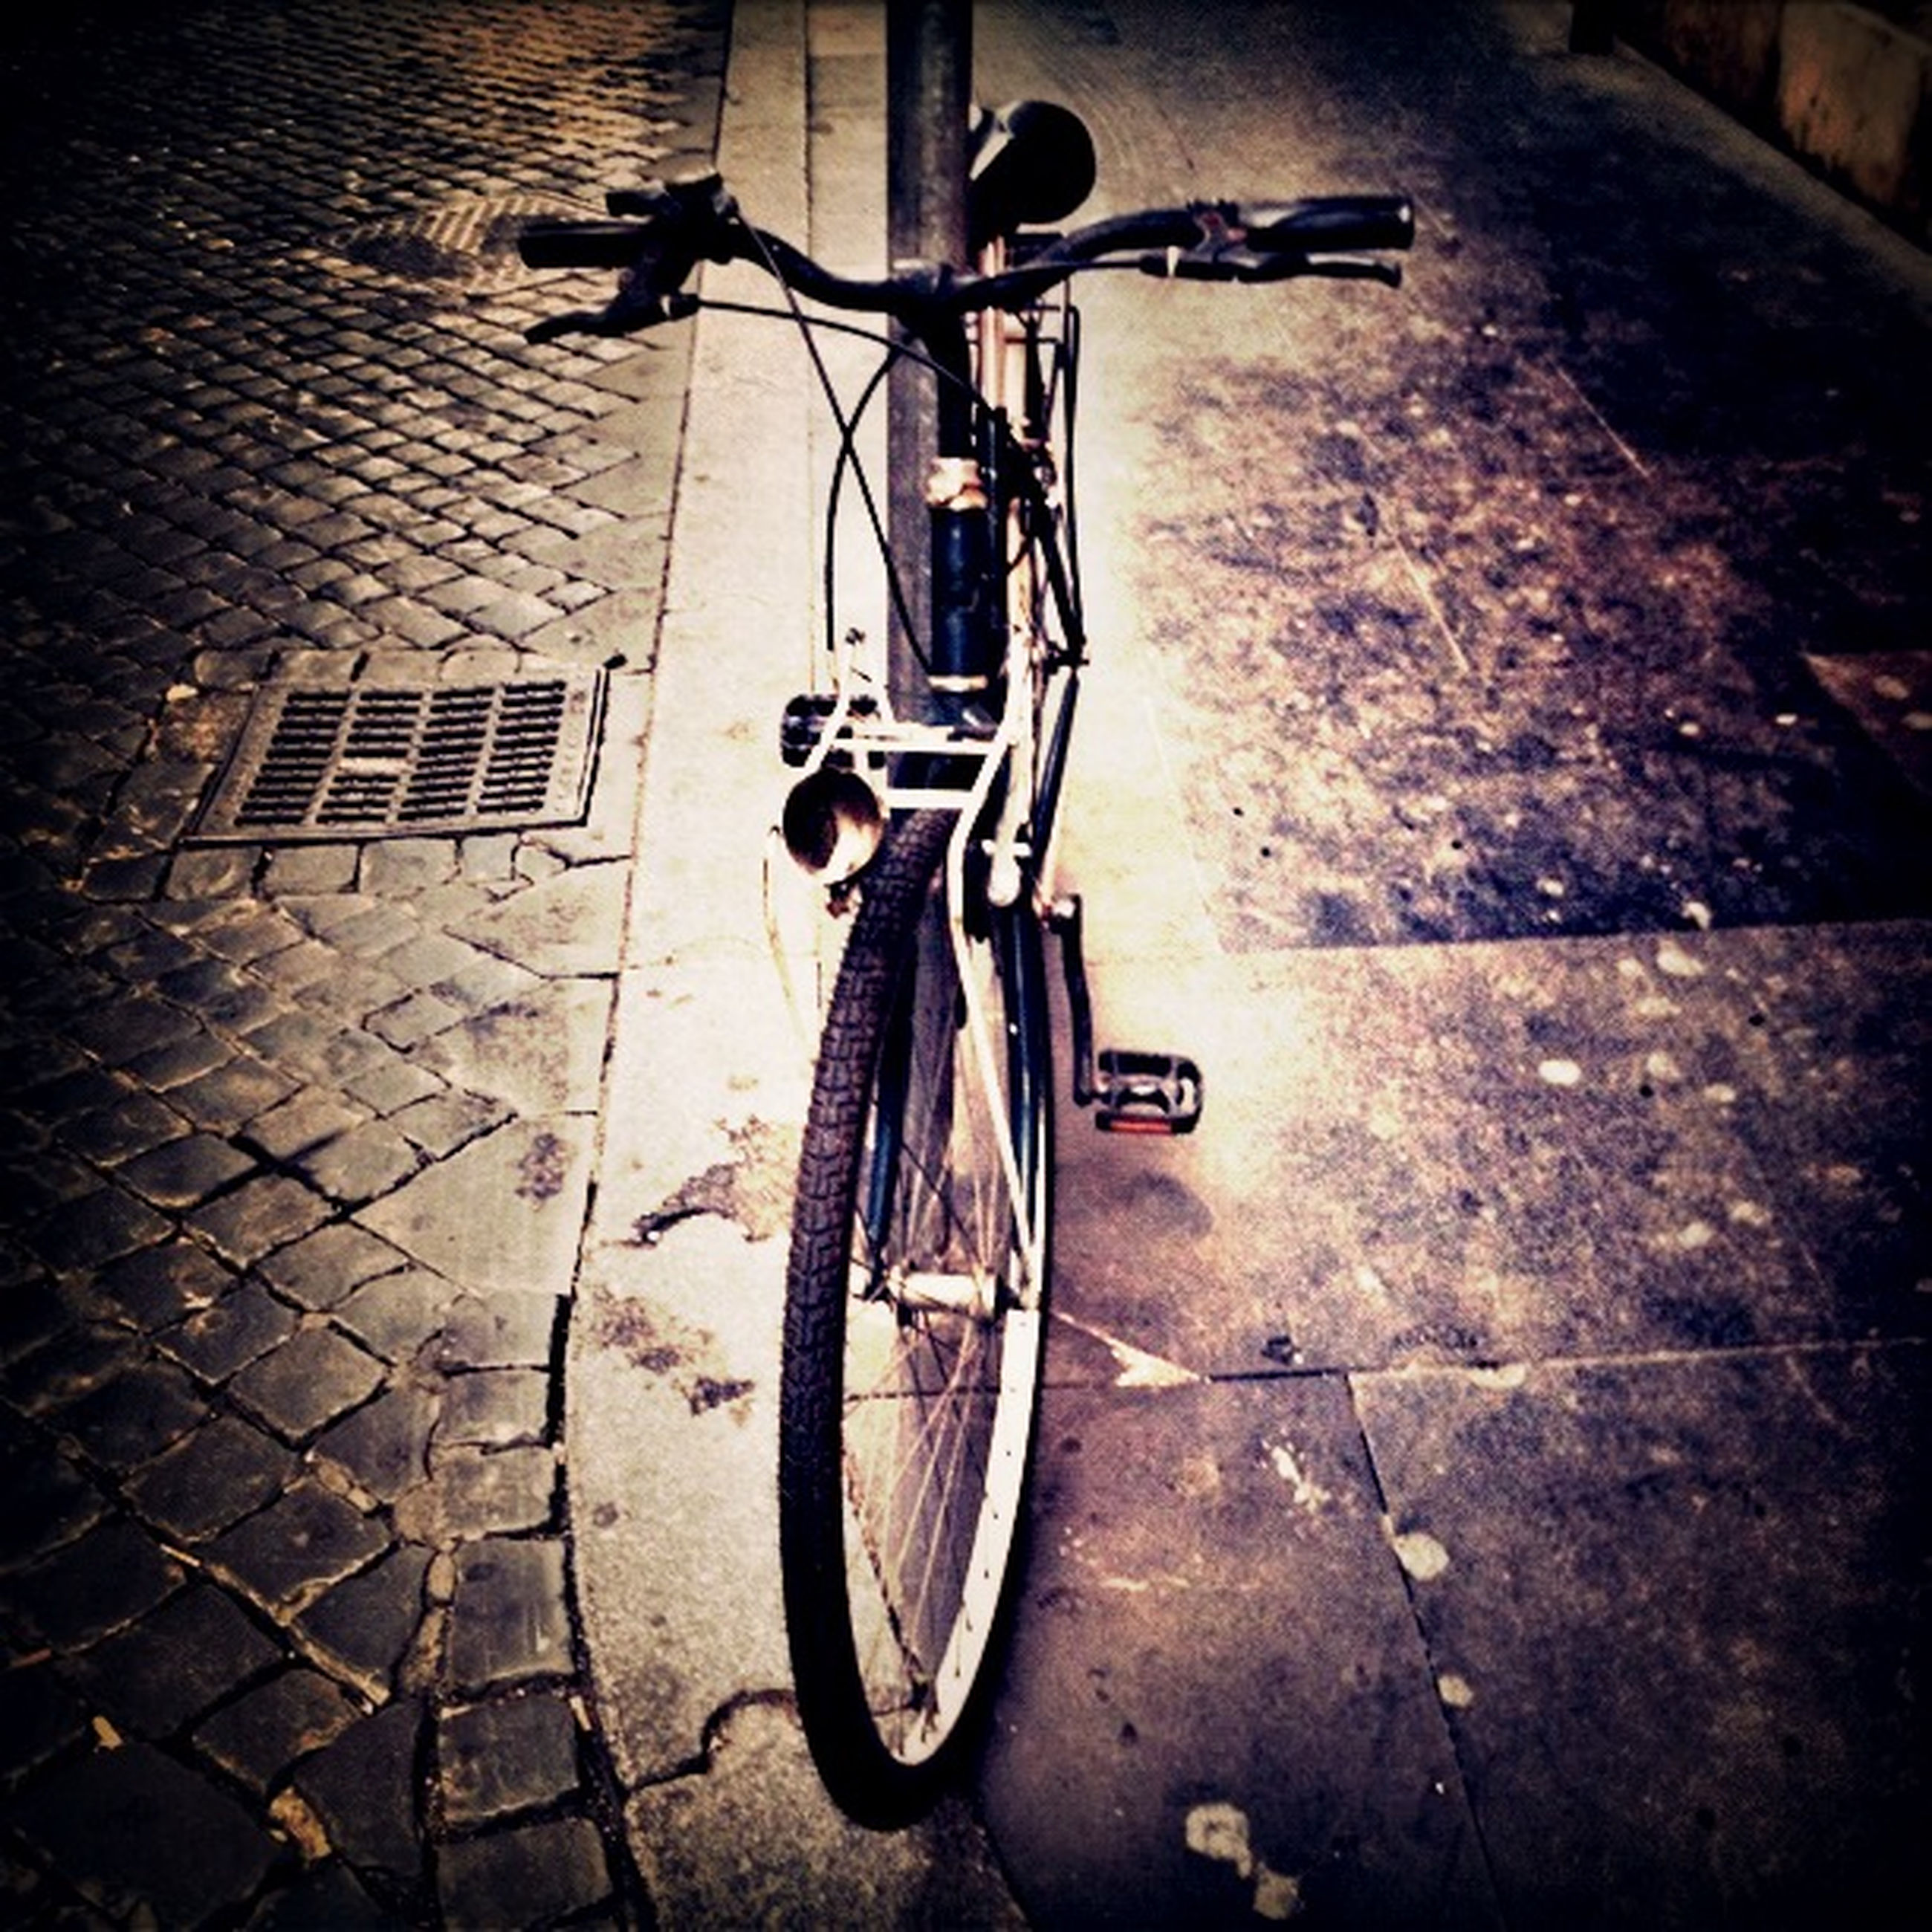 bicycle, transportation, mode of transport, land vehicle, stationary, parked, parking, street, wheel, road, outdoors, travel, day, sidewalk, no people, cobblestone, built structure, cycle, building exterior, sunlight